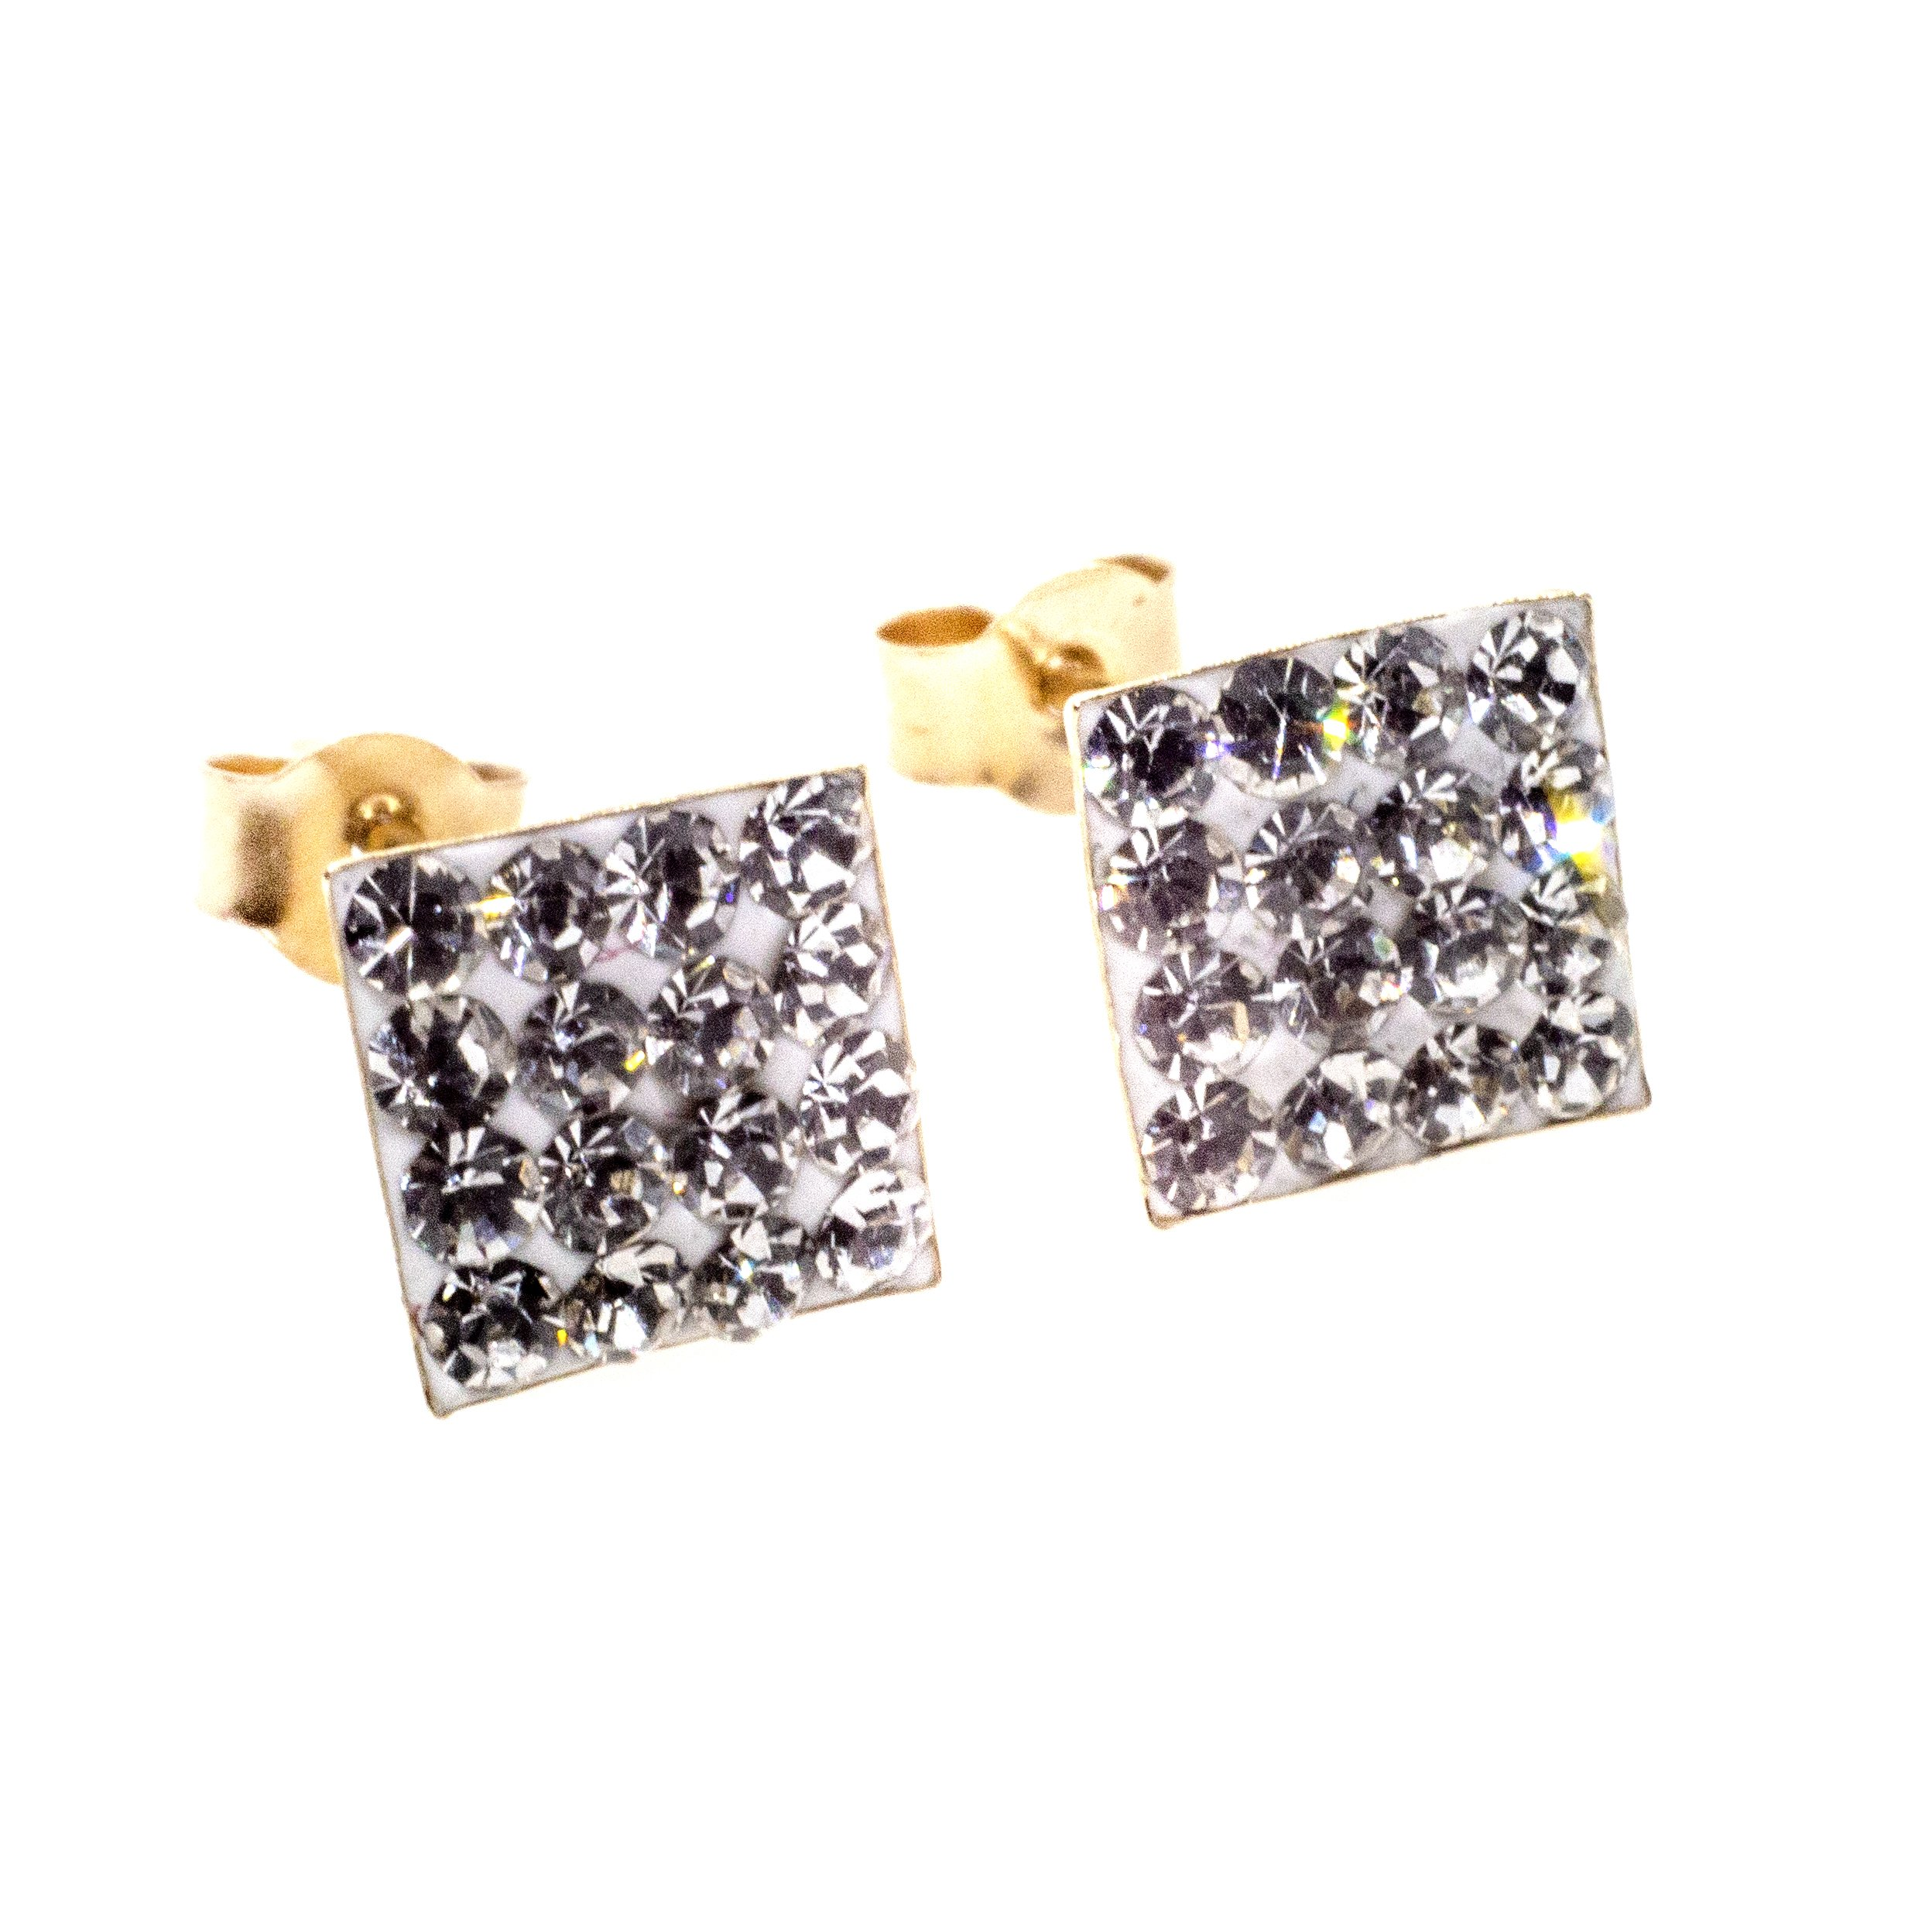 7mm square stud earring 9ct gold with Austrian crystal gems alt 1